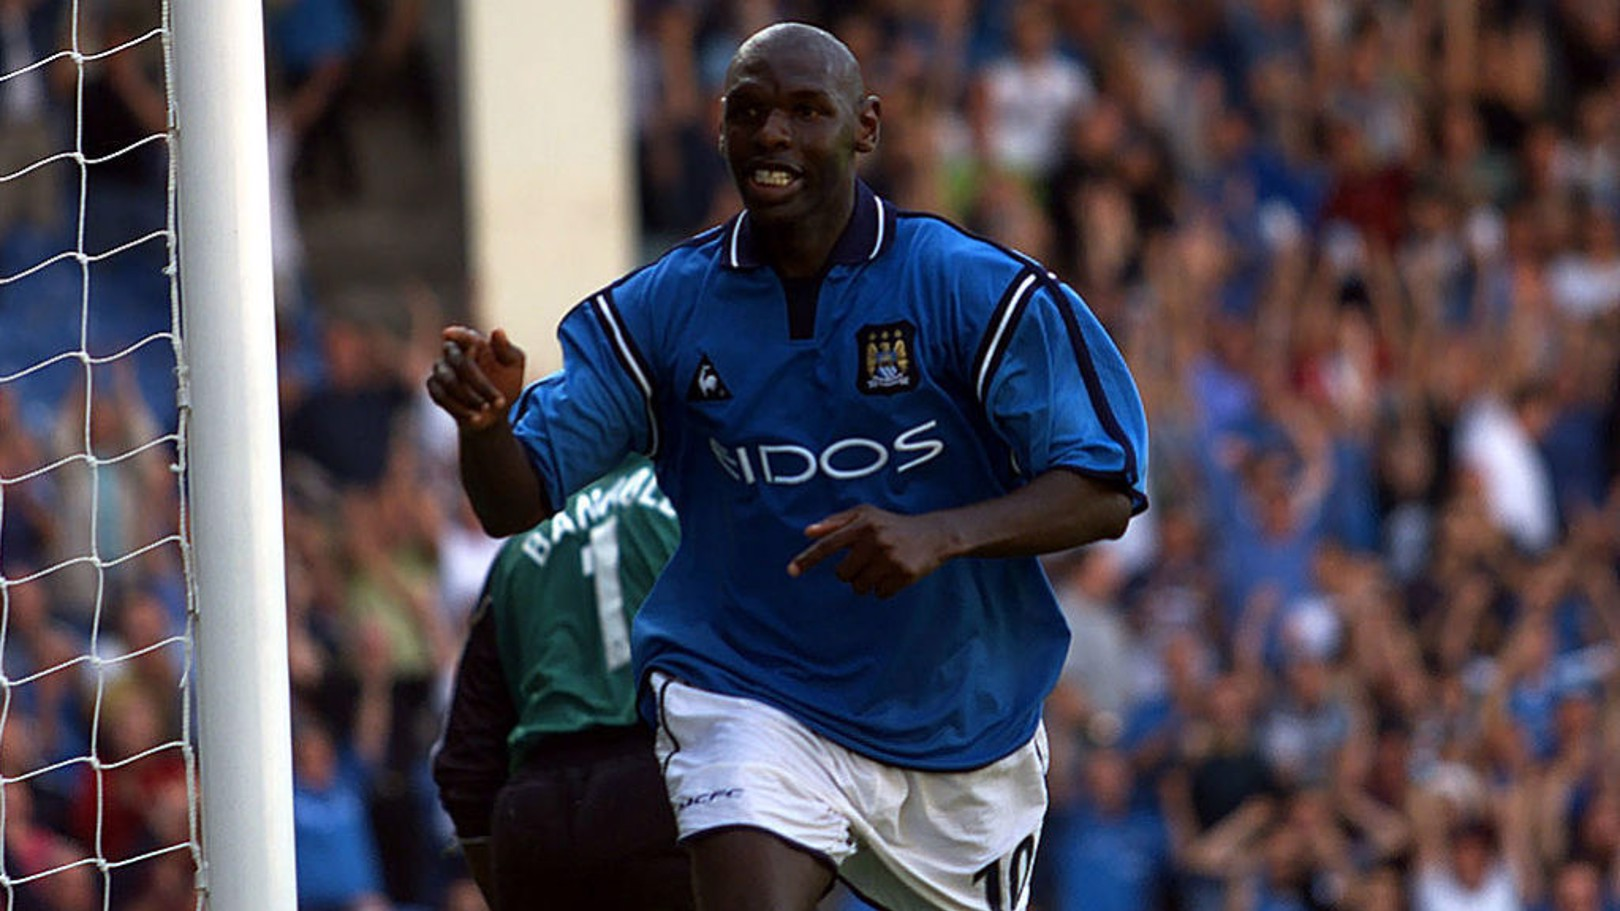 FEED THE GOAT: Join Shaun Goater for a tour of the Etihad Stadium